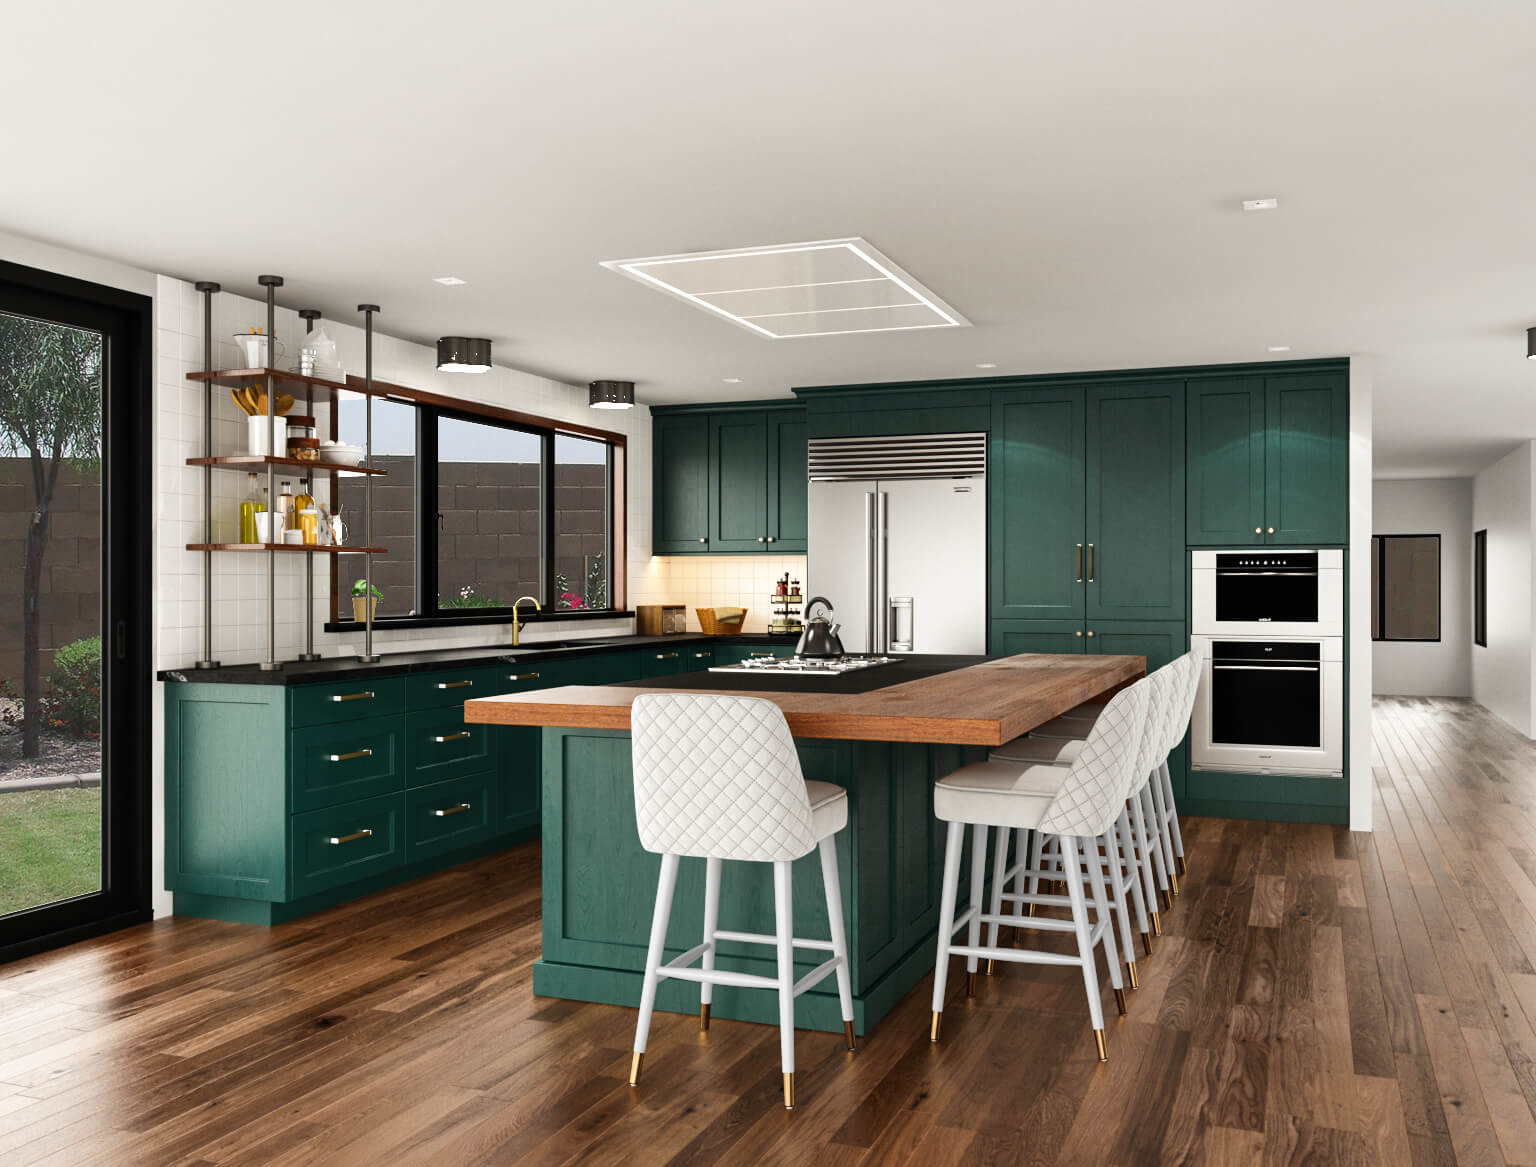 Emerald green kitchen rendering | Paint color: Pittsburgh Paints Nightwatch | Carla Aston, Designer